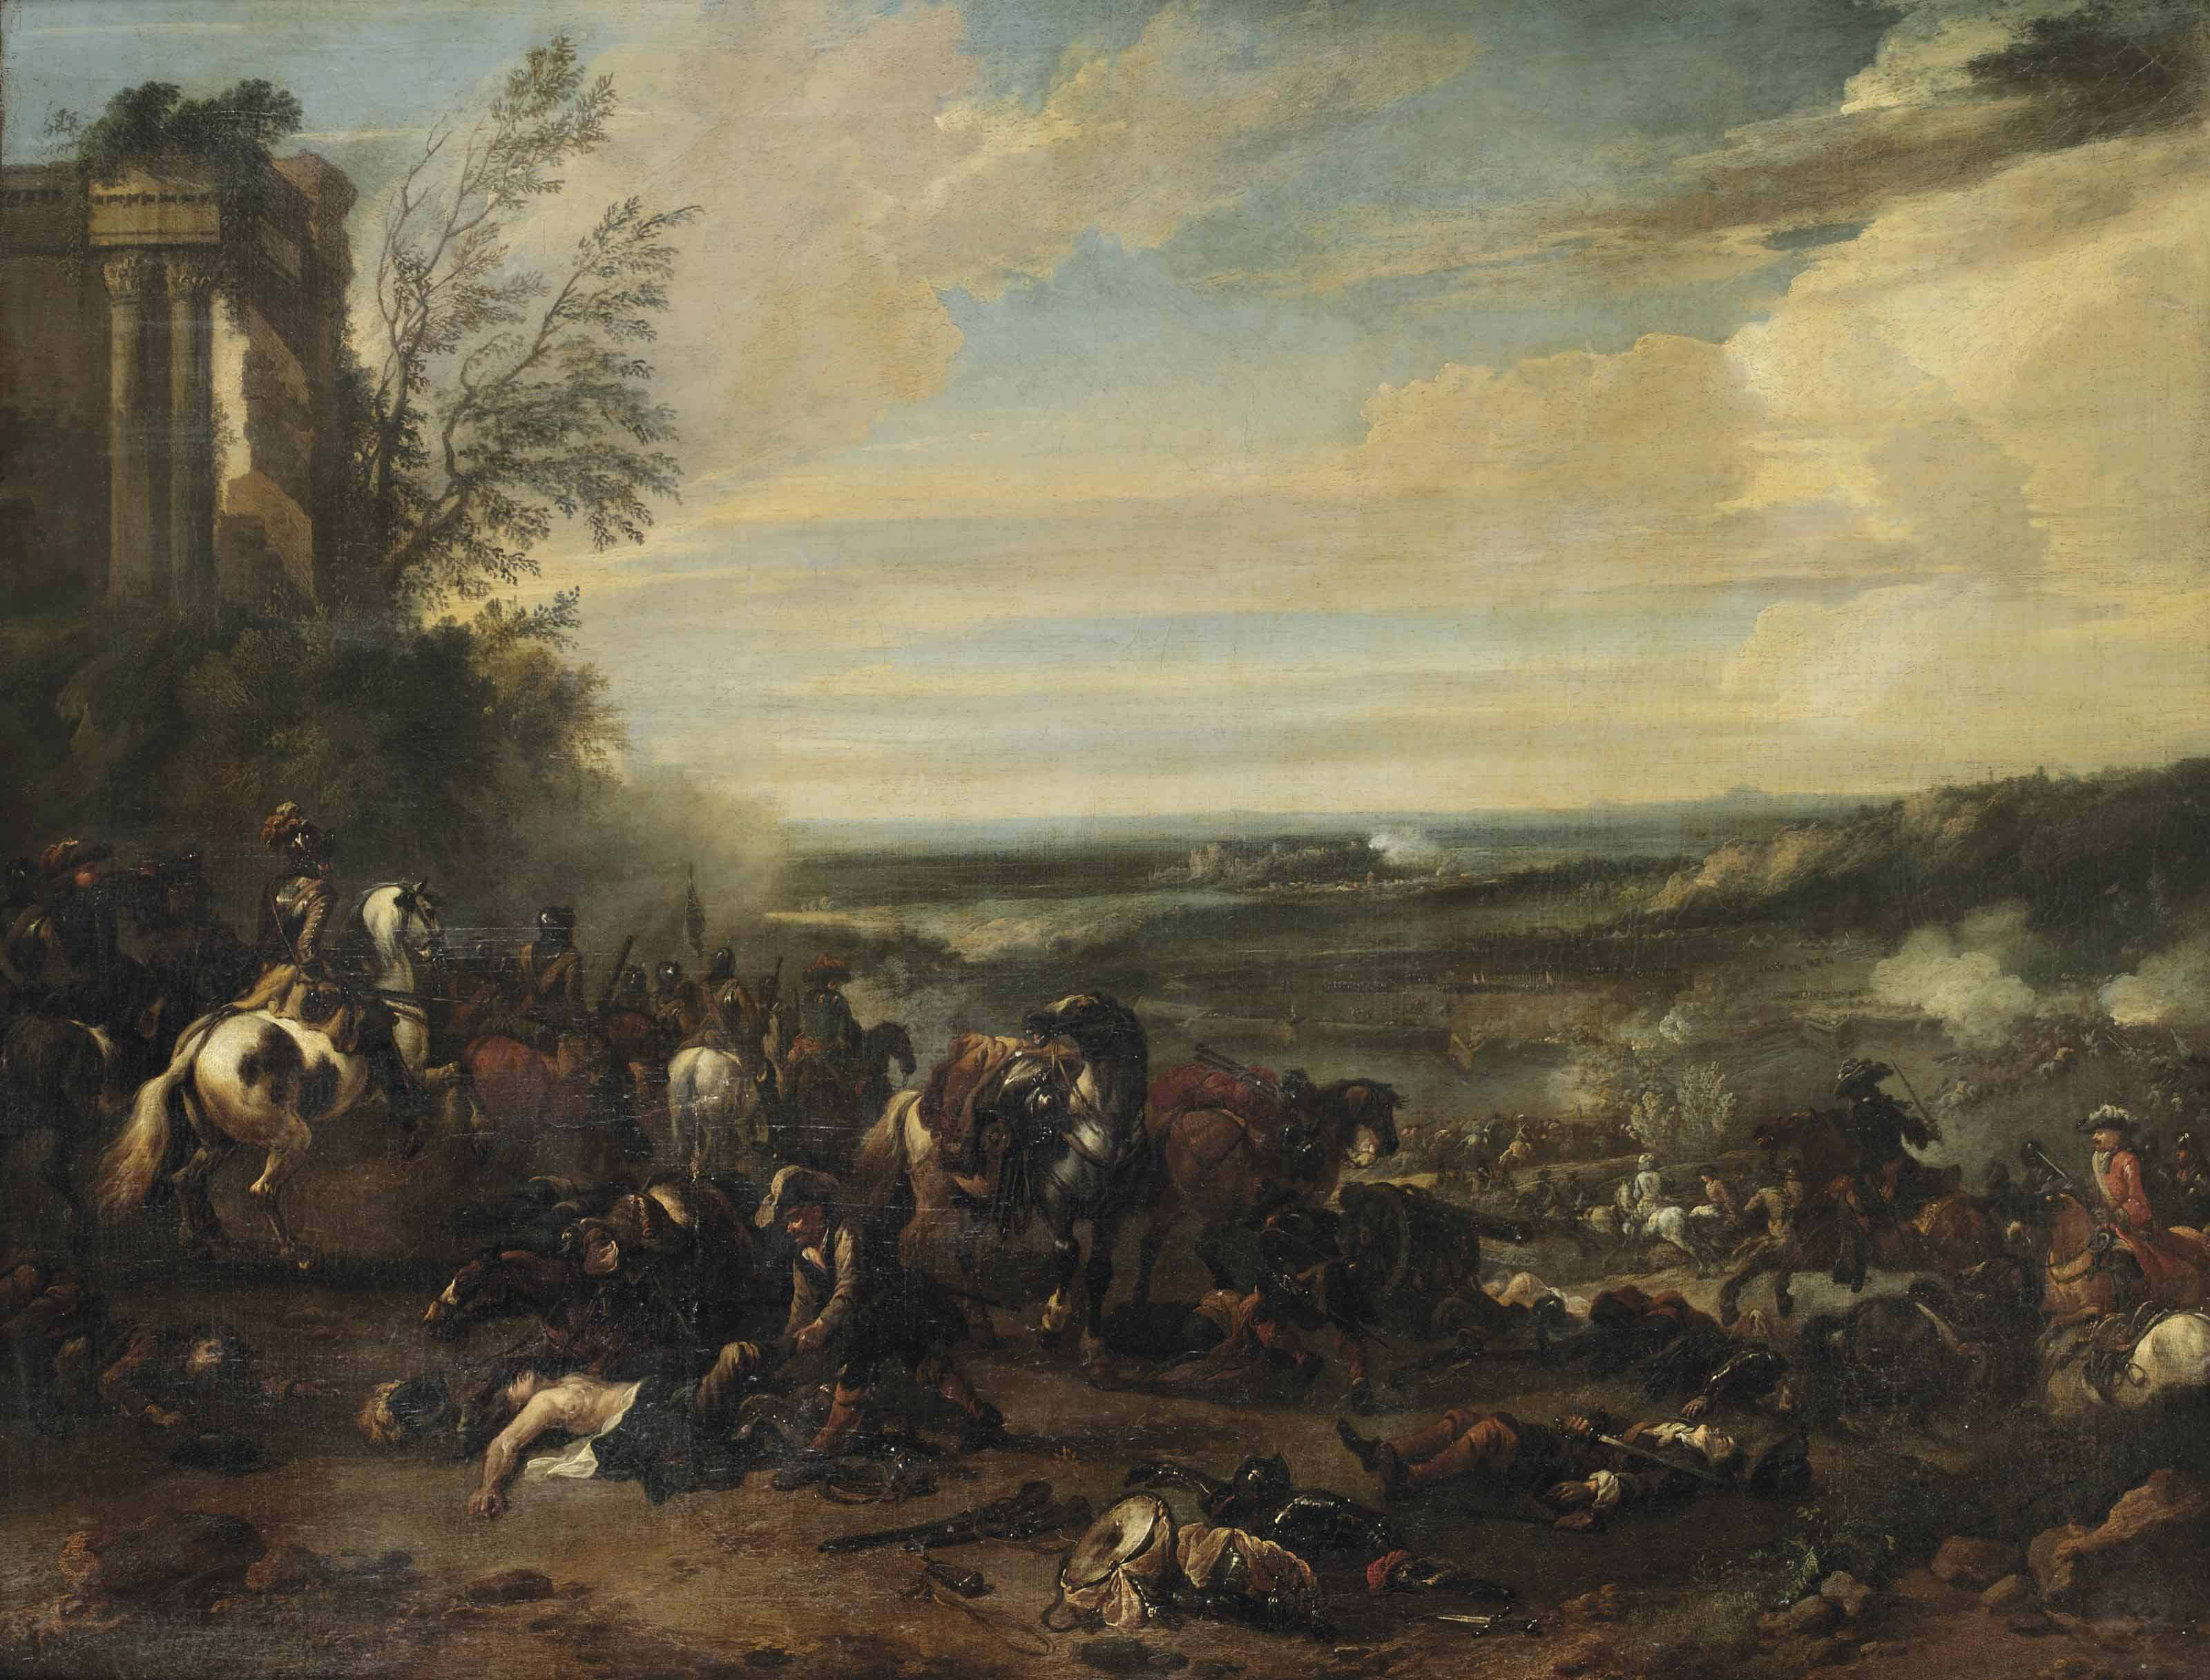 A battle scene with a sieged town beyond